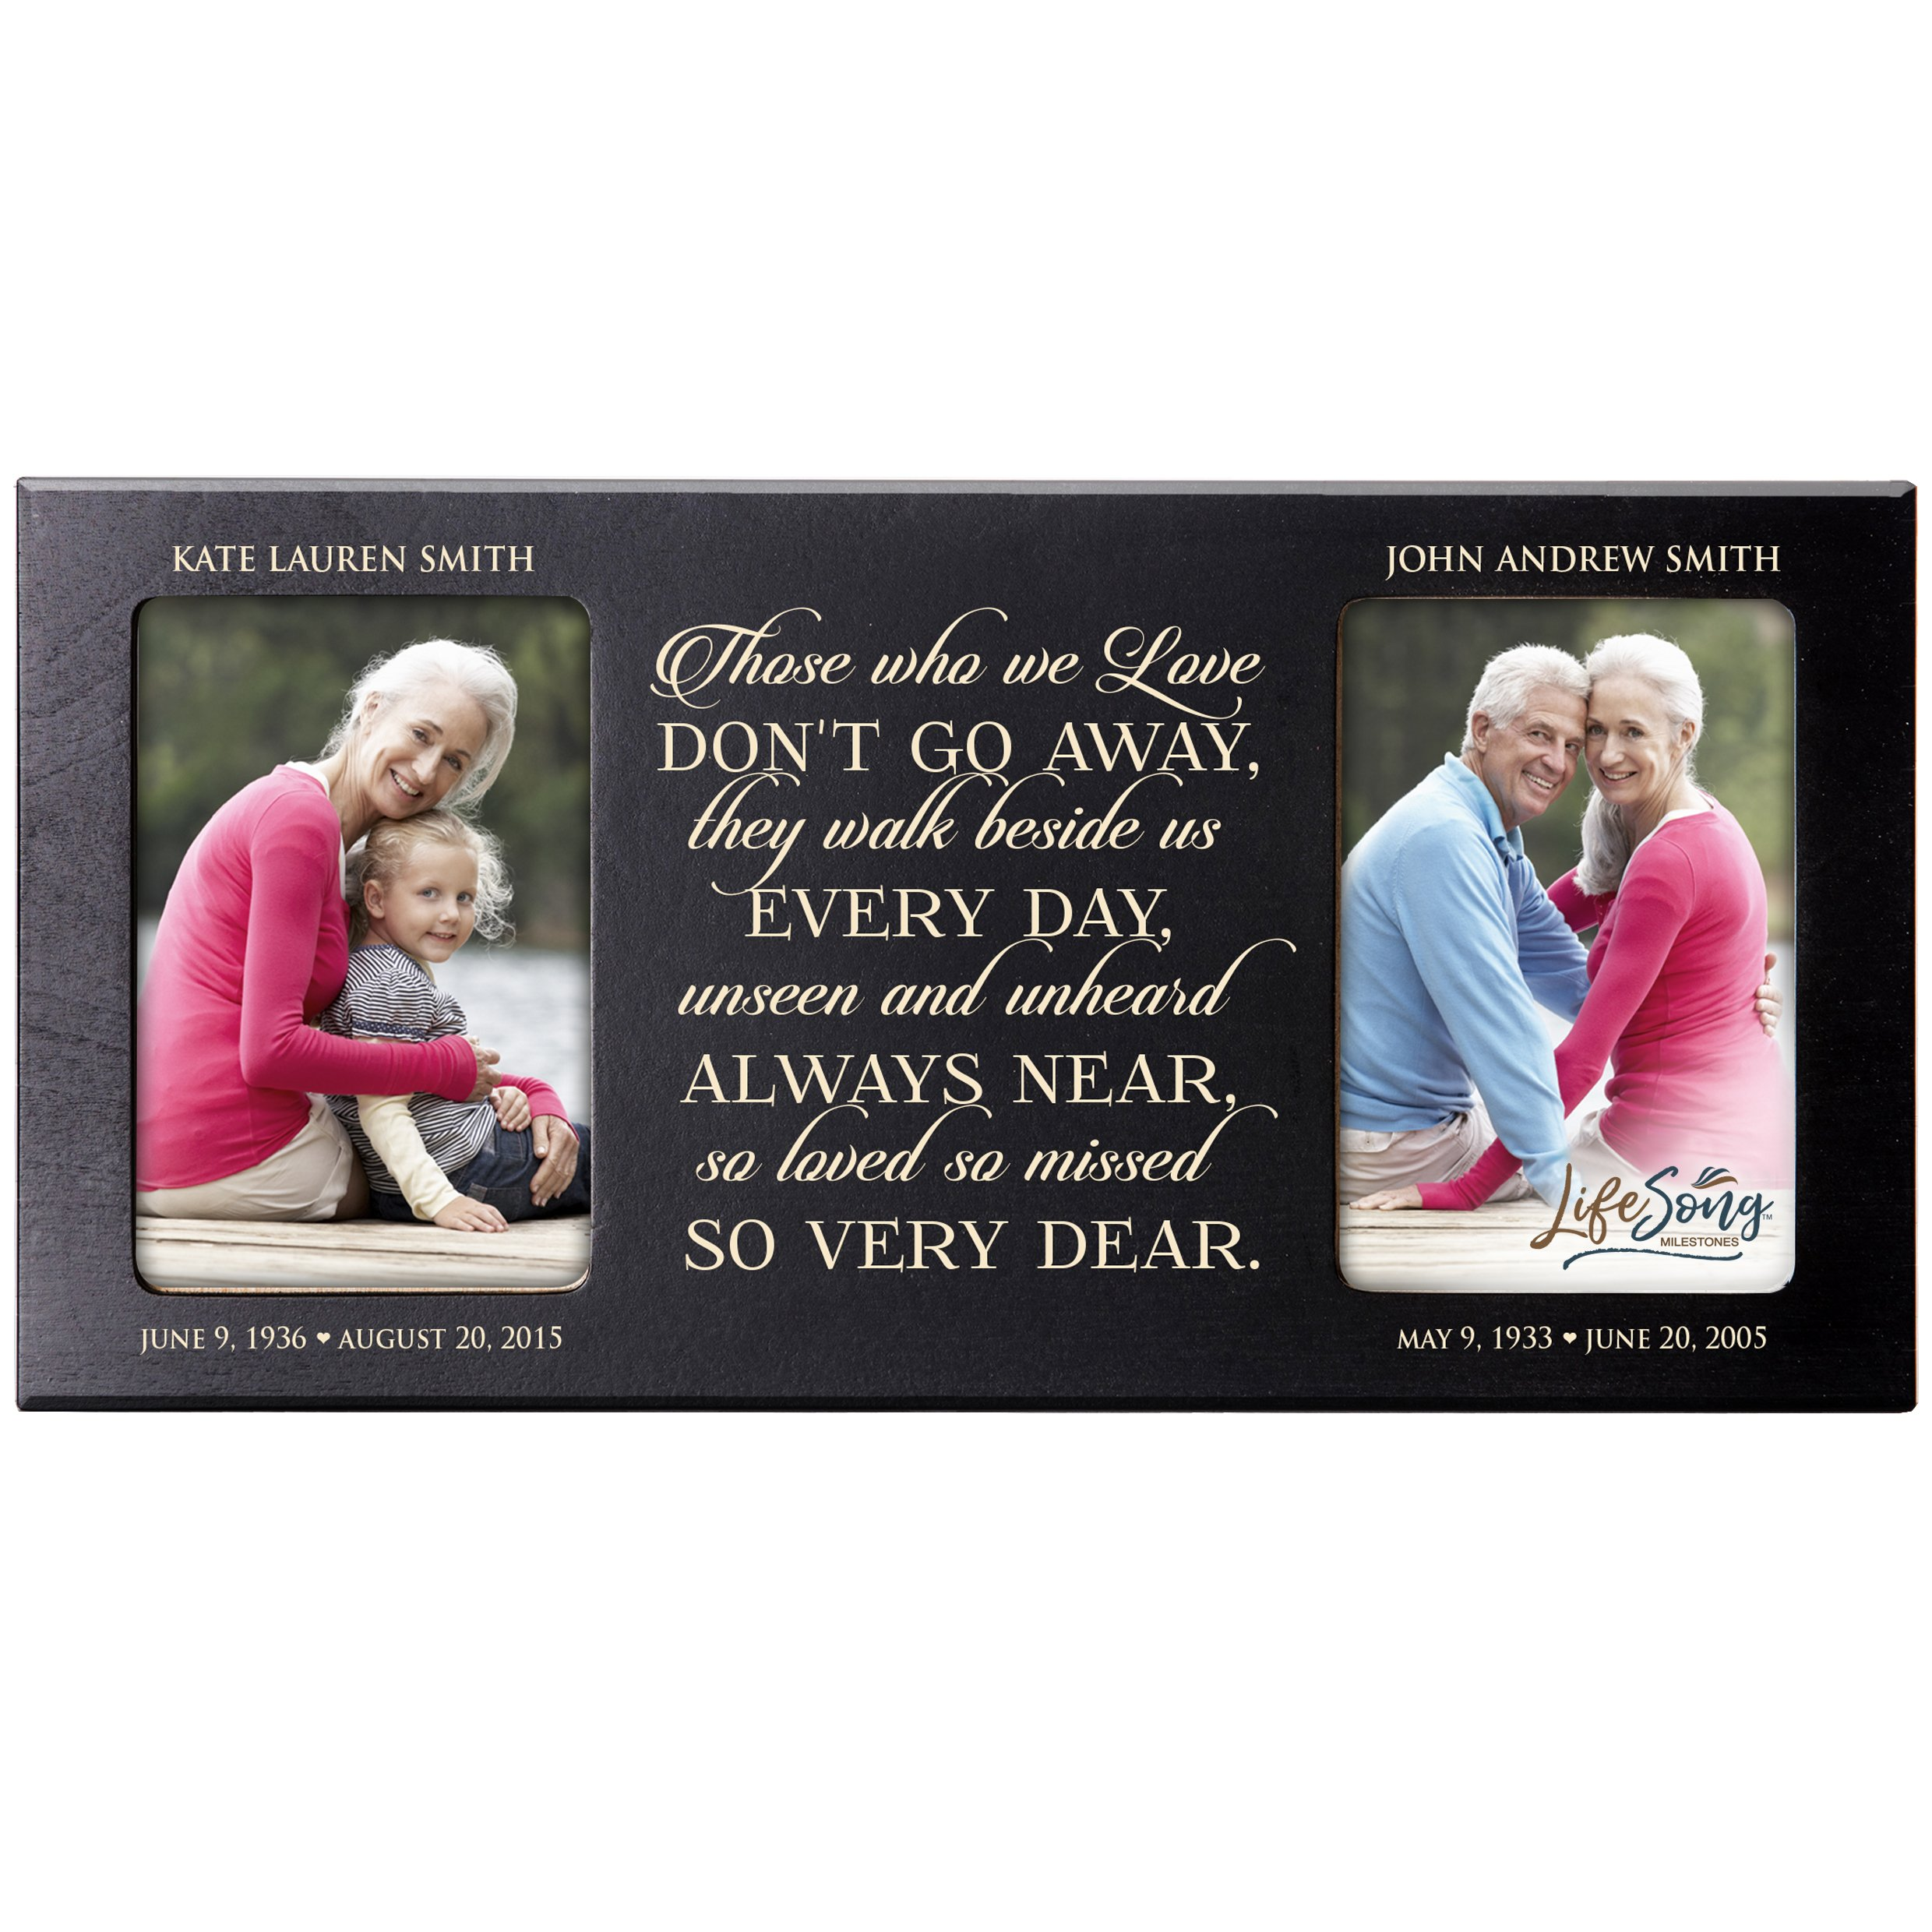 Personalized Memorial Sympathy Picture Frame, Those Who We Love Don't Go Away They Walk Beside Us Every Day, Custom Frame Holds Two 4x6 Photos, Made In USA by LifeSong Milestones (Black)